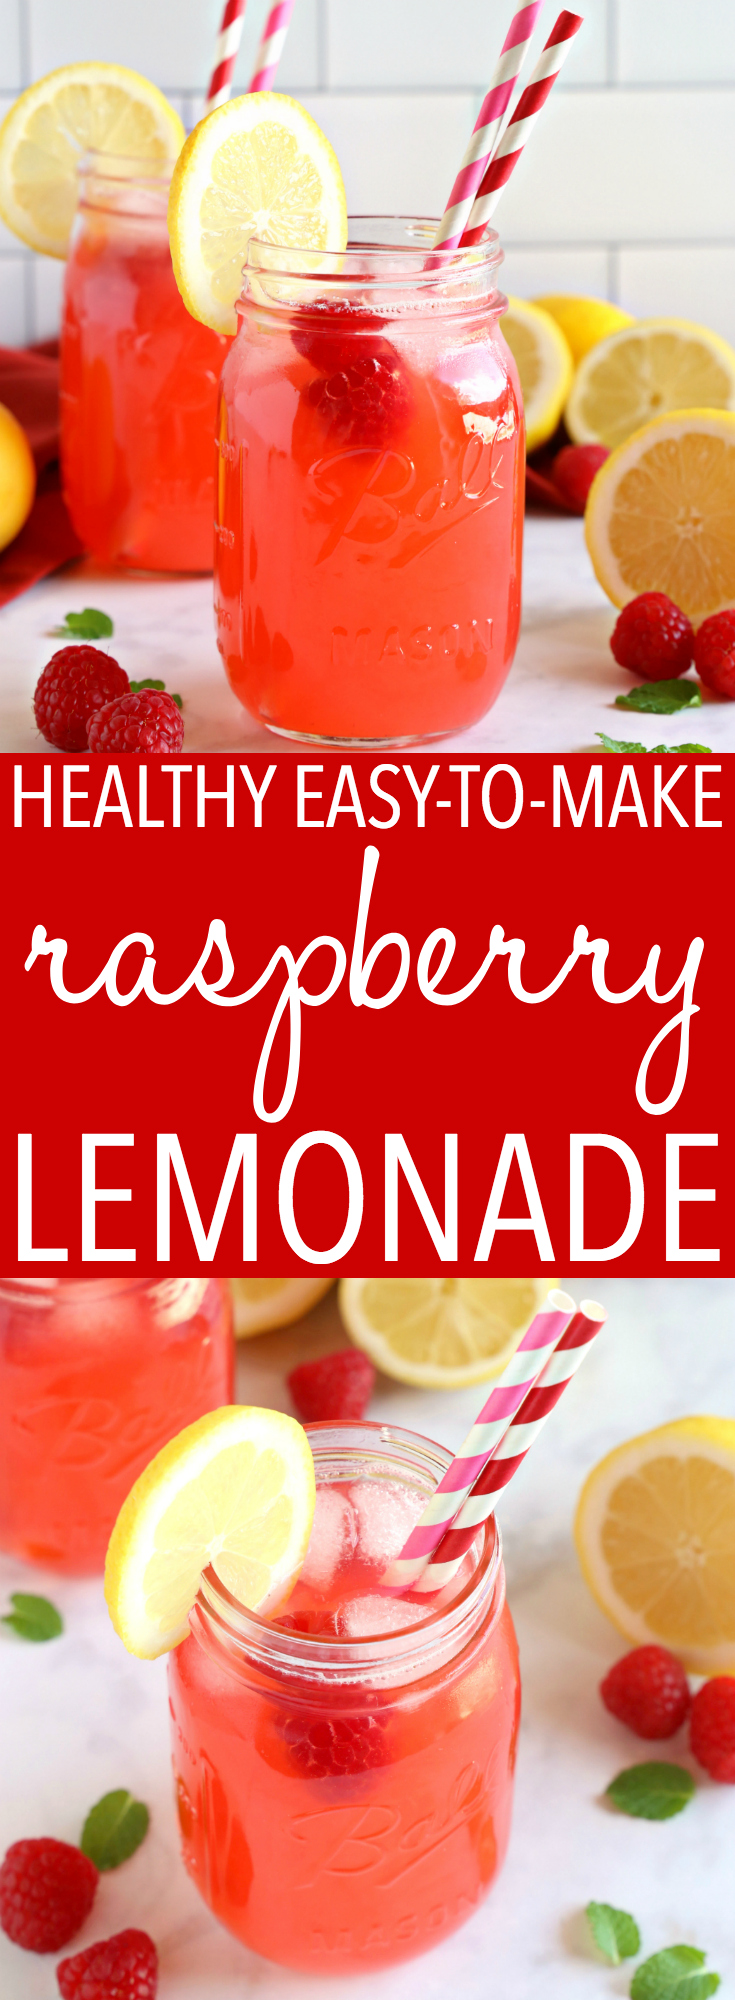 This Easy Healthy Raspberry Lemonade is the perfect summer refreshment without all those empty calories. Made with fresh fruit and NO refined sugar! #healthylemonade #raspberrylemonade #lemonadenorefinedsugar #easylemonaderecipe #healthysummerdrink #healthyraspberryrecipe #healthyraspberrylemonade #easyblenderlemonade #lemonadehoney